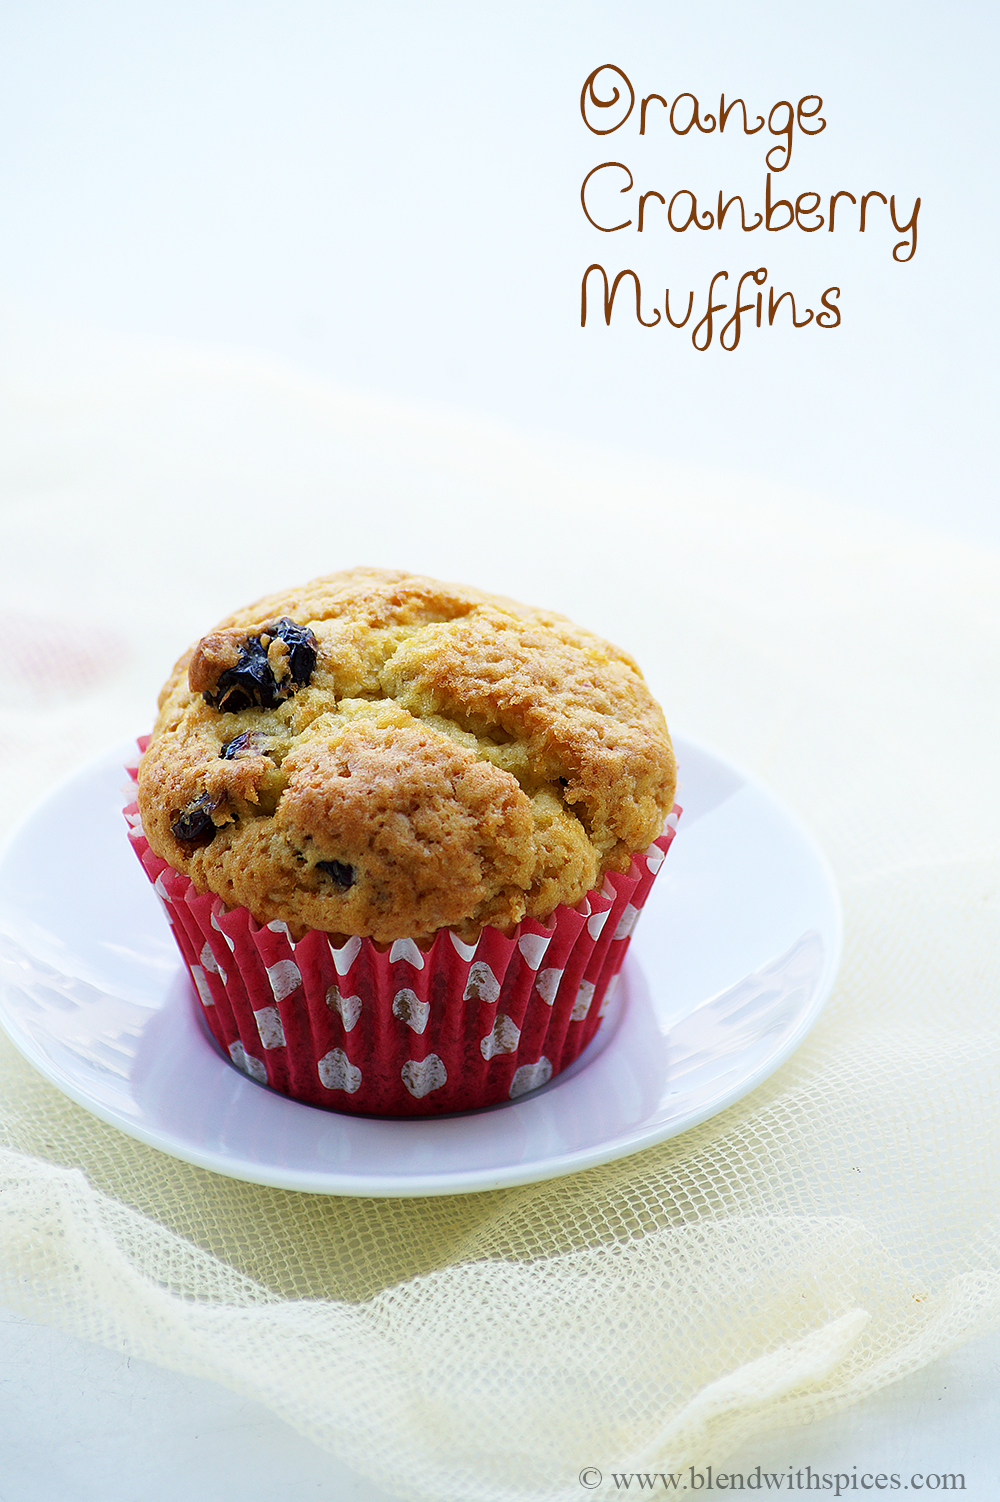 orange cranberry muffins recipe, vegan muffins recipes